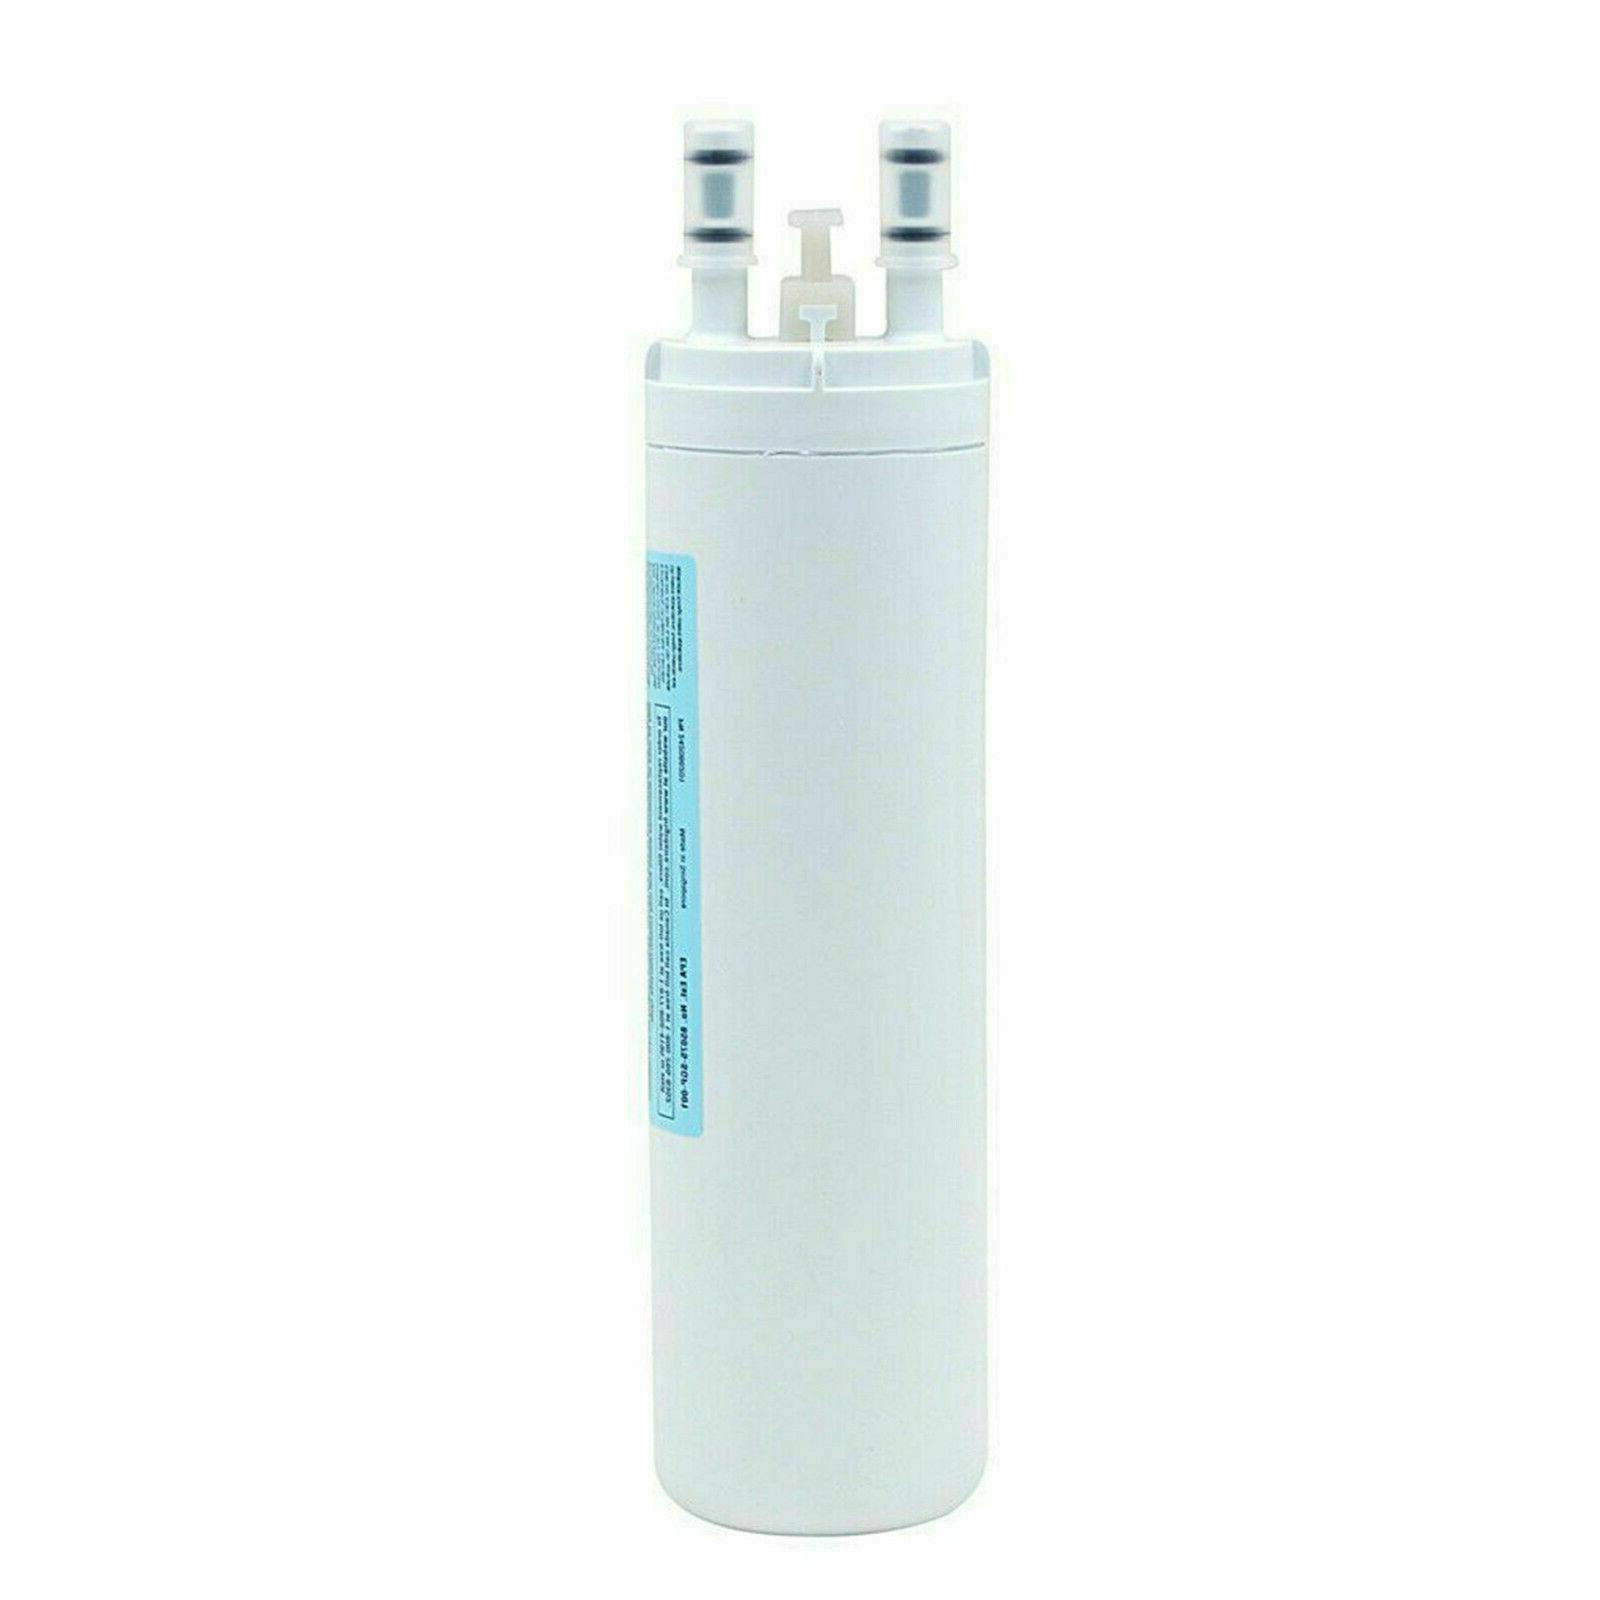 2Pack Water WF3CB Replacement Filter